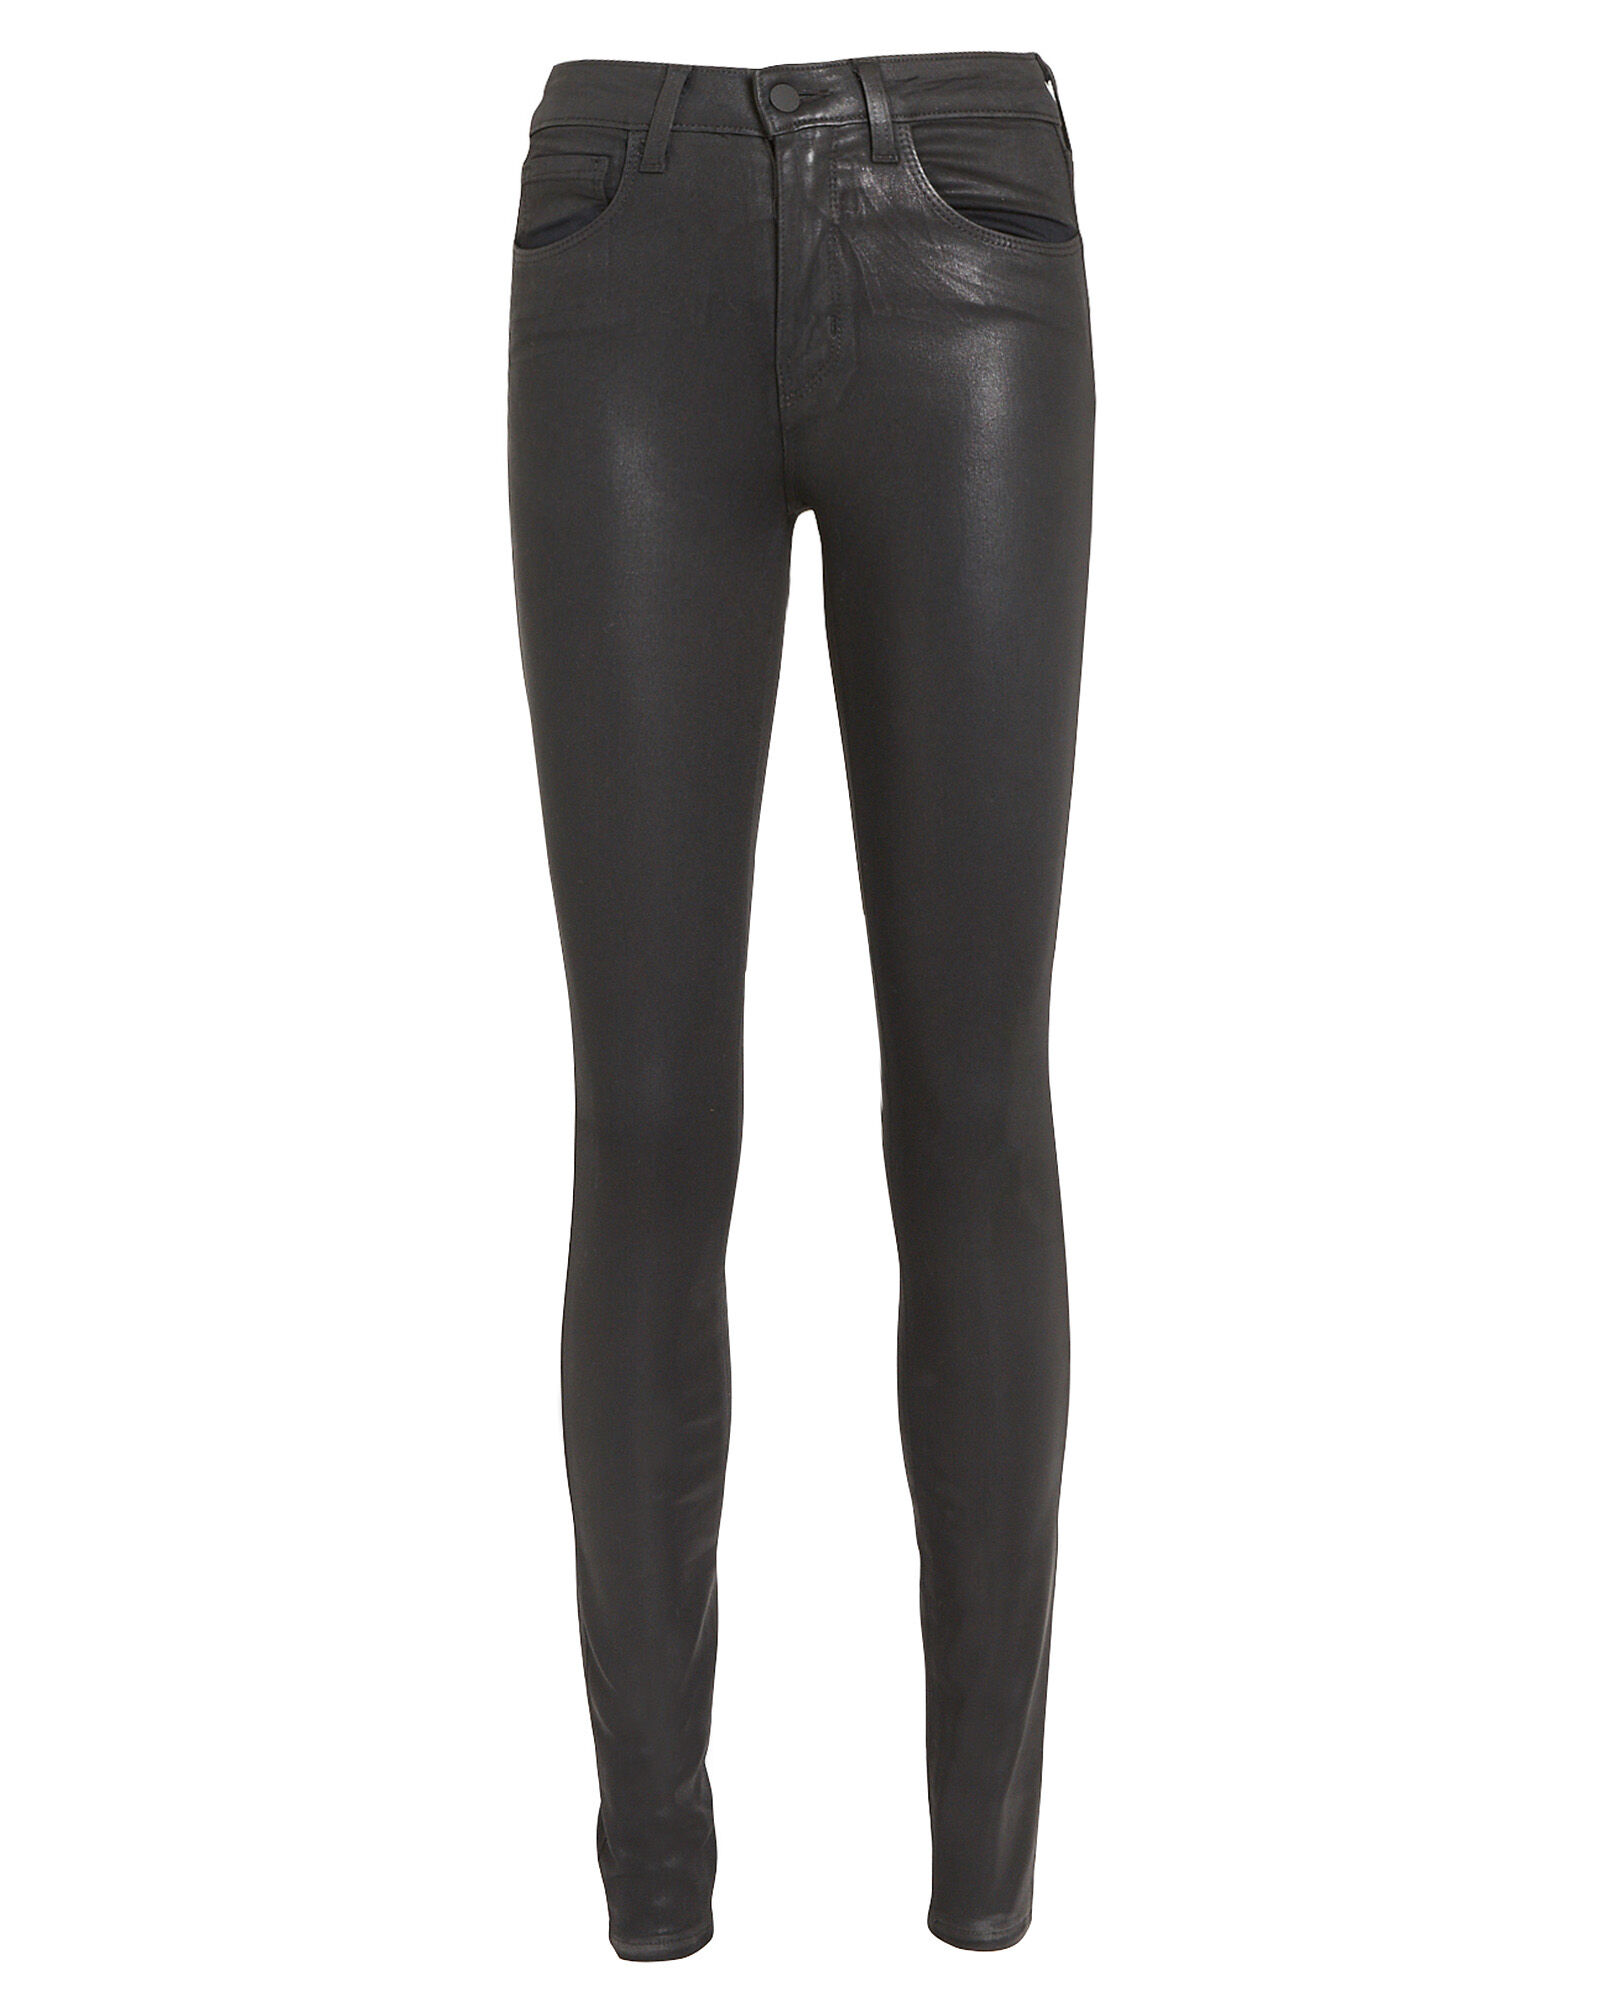 Marguerite Coated Skinny Jeans, BLACK, hi-res